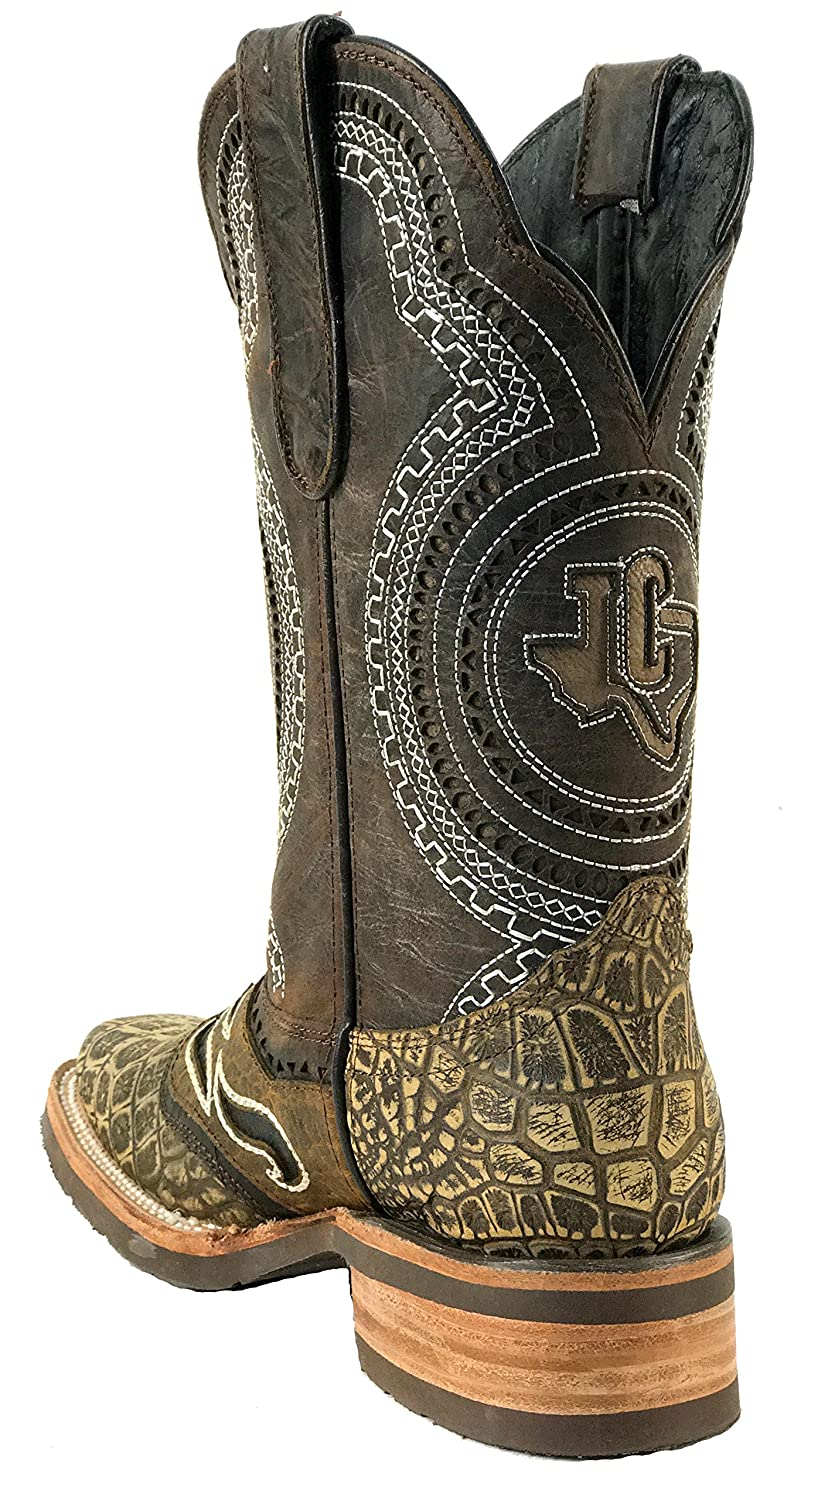 Mens New Durable Leather Crocodile Belly Cowboy Western Rodeo Work Boots Rustic Sand